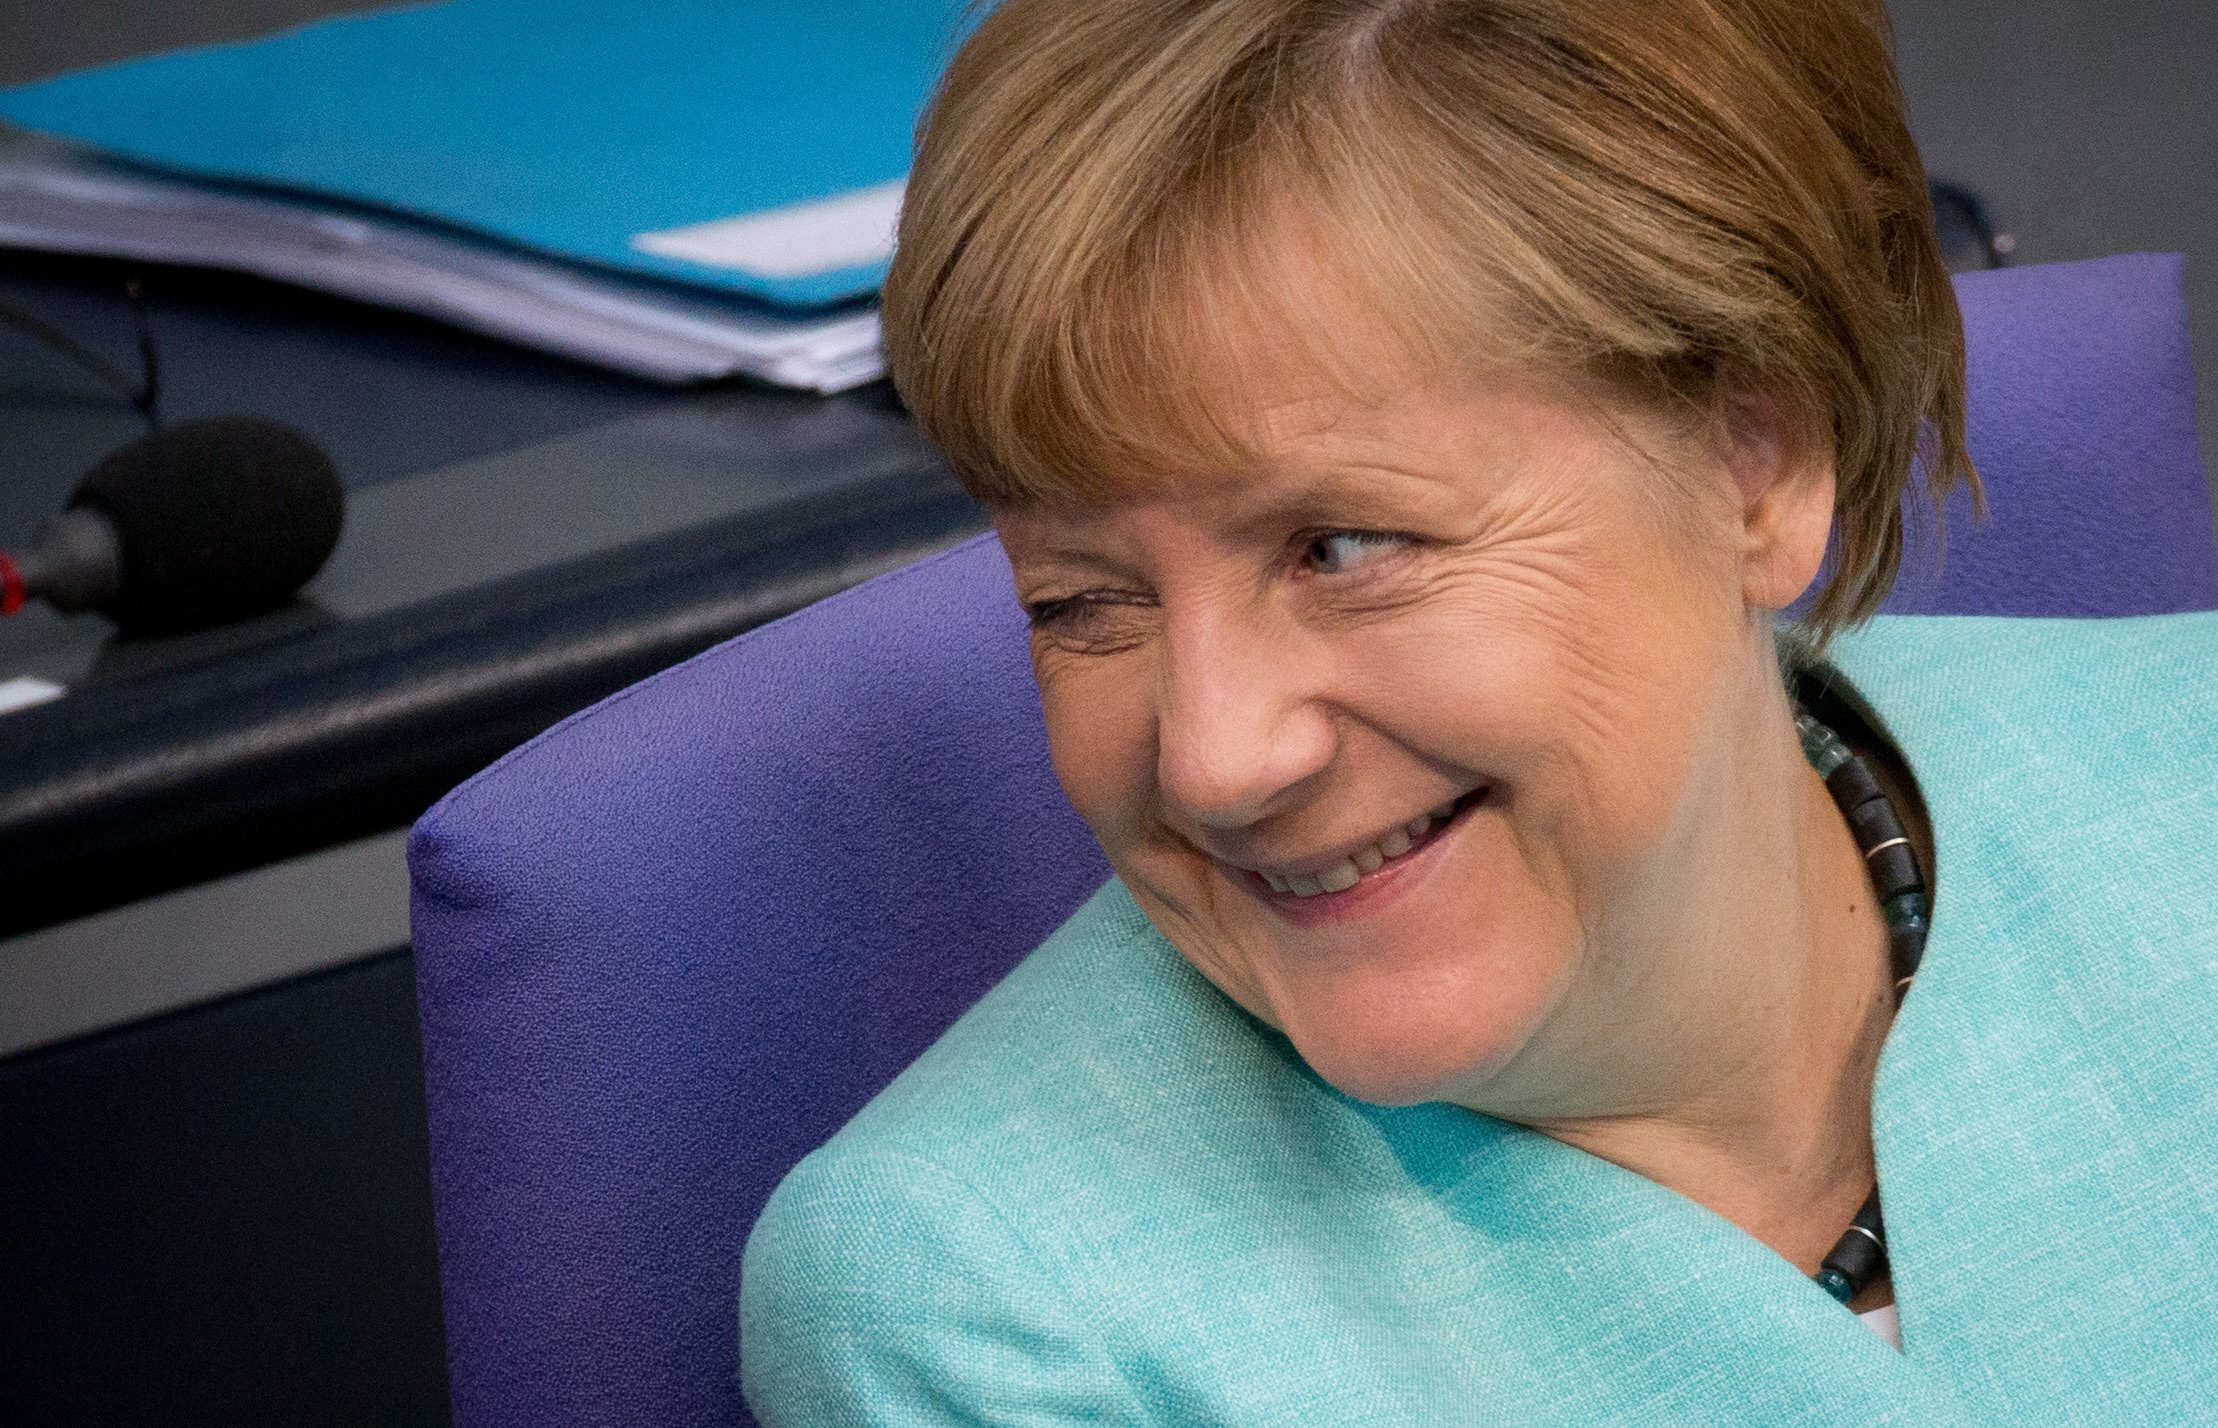 German Bundestag budget meeting...epa04923343 German Chancellor Angela Merkel winks at a colleague in the parliament building in Berlin, Germany, 10 September 2015. The German parliament continues to discuss the budget for 2016.  EPA/KAY NIETFELD